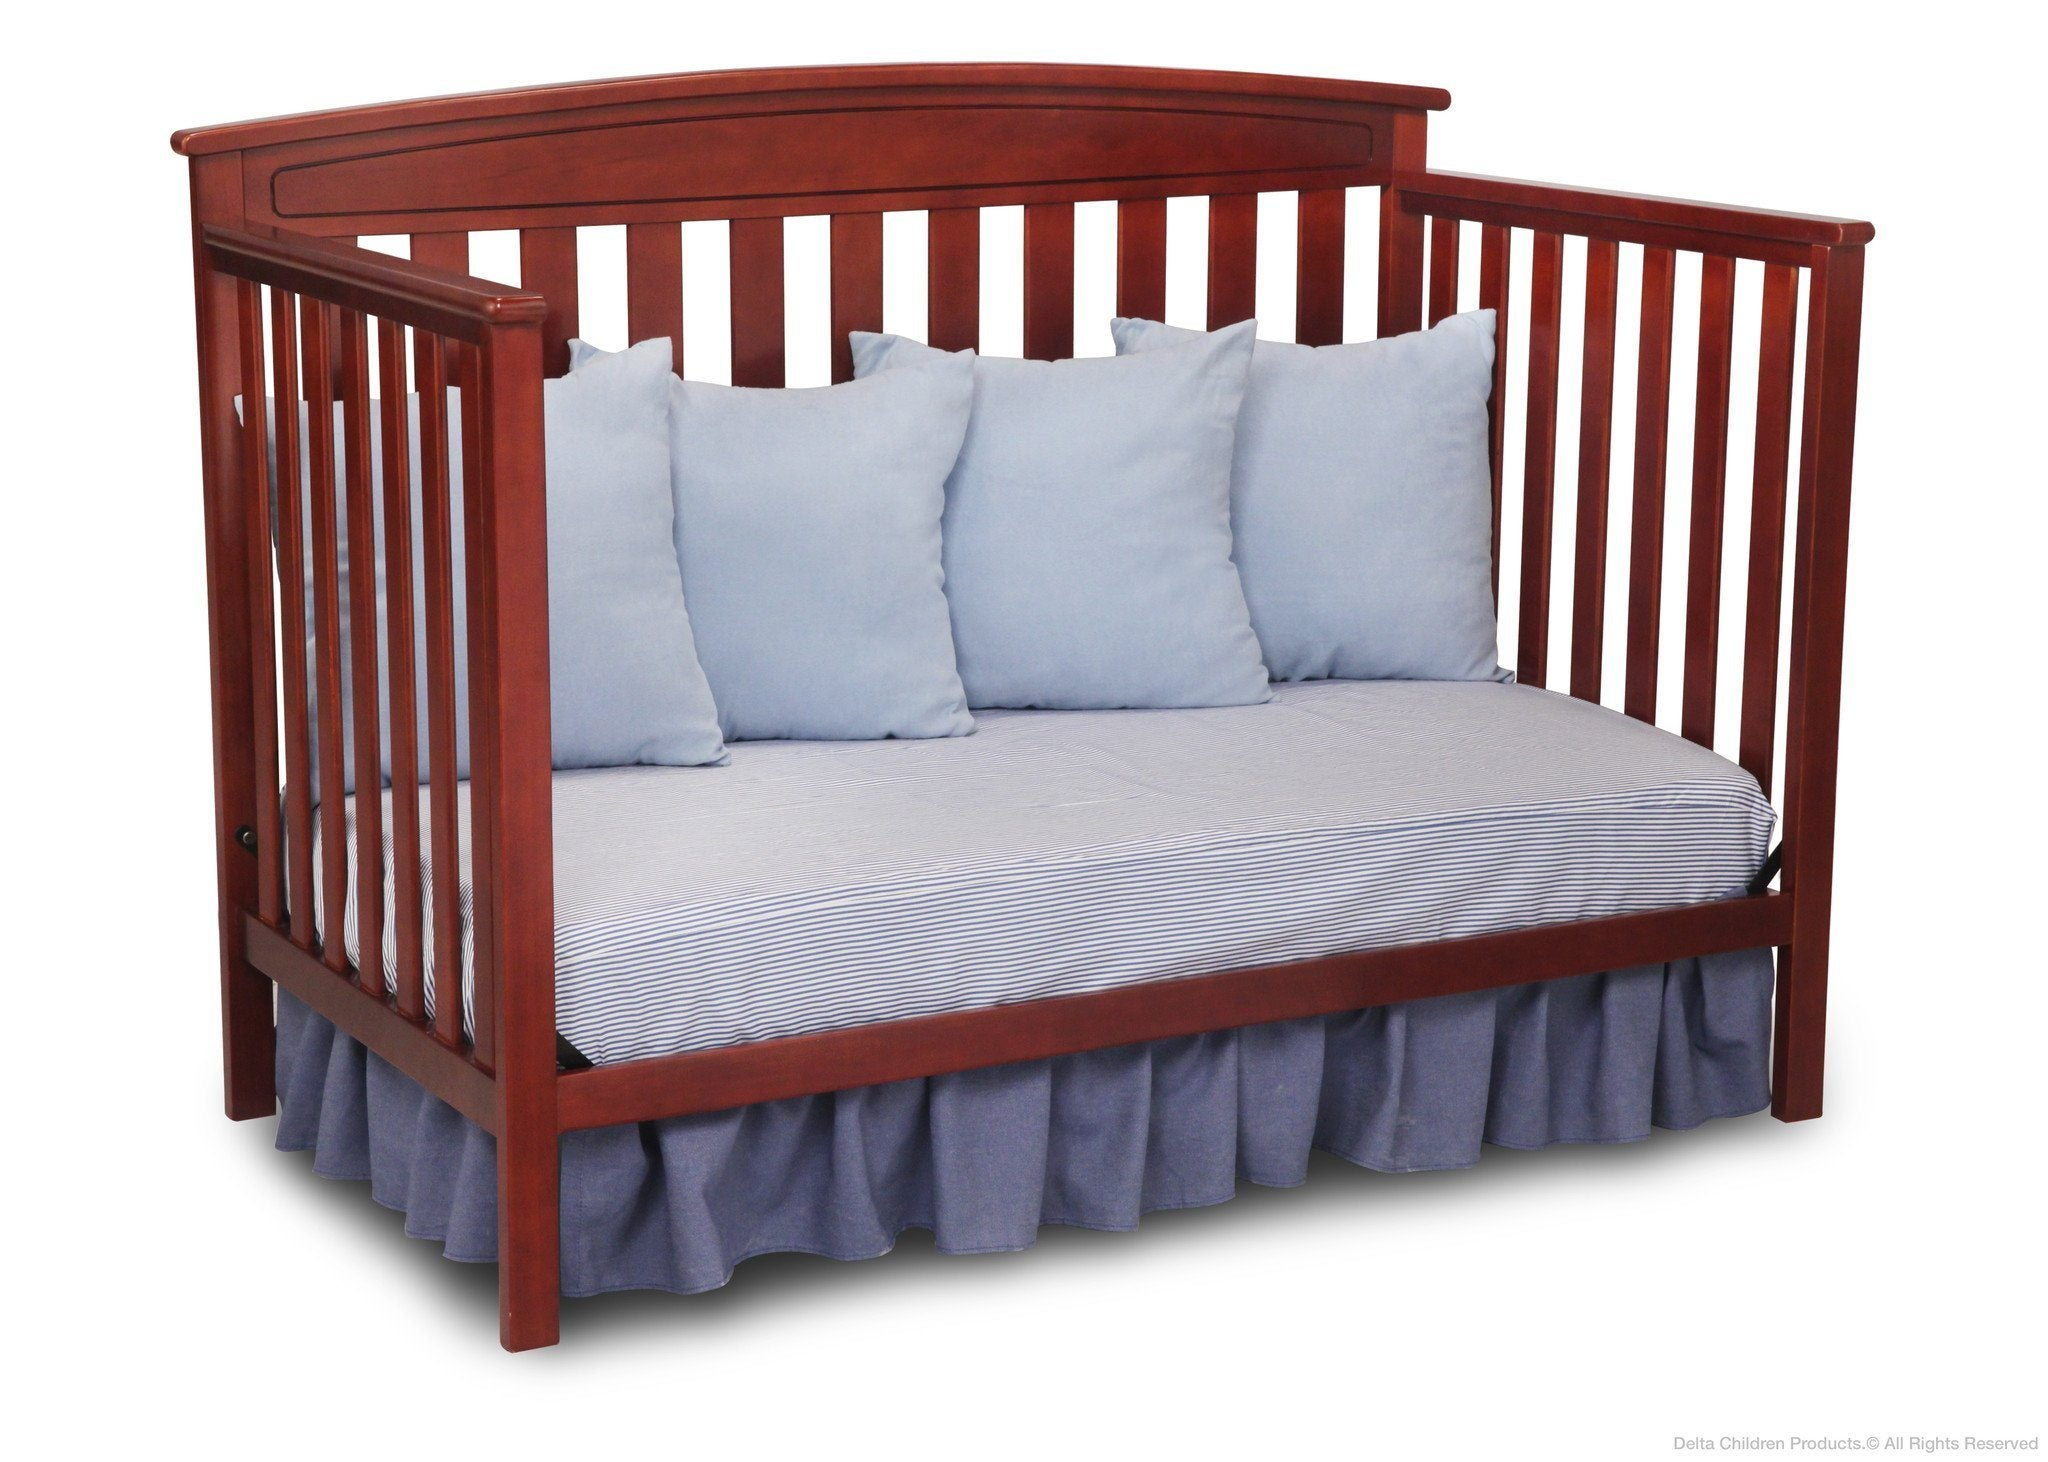 Delta Children Cabernet (648) Gateway 4-in-1 Crib, Toddler Bed Conversion with Daybed f4f